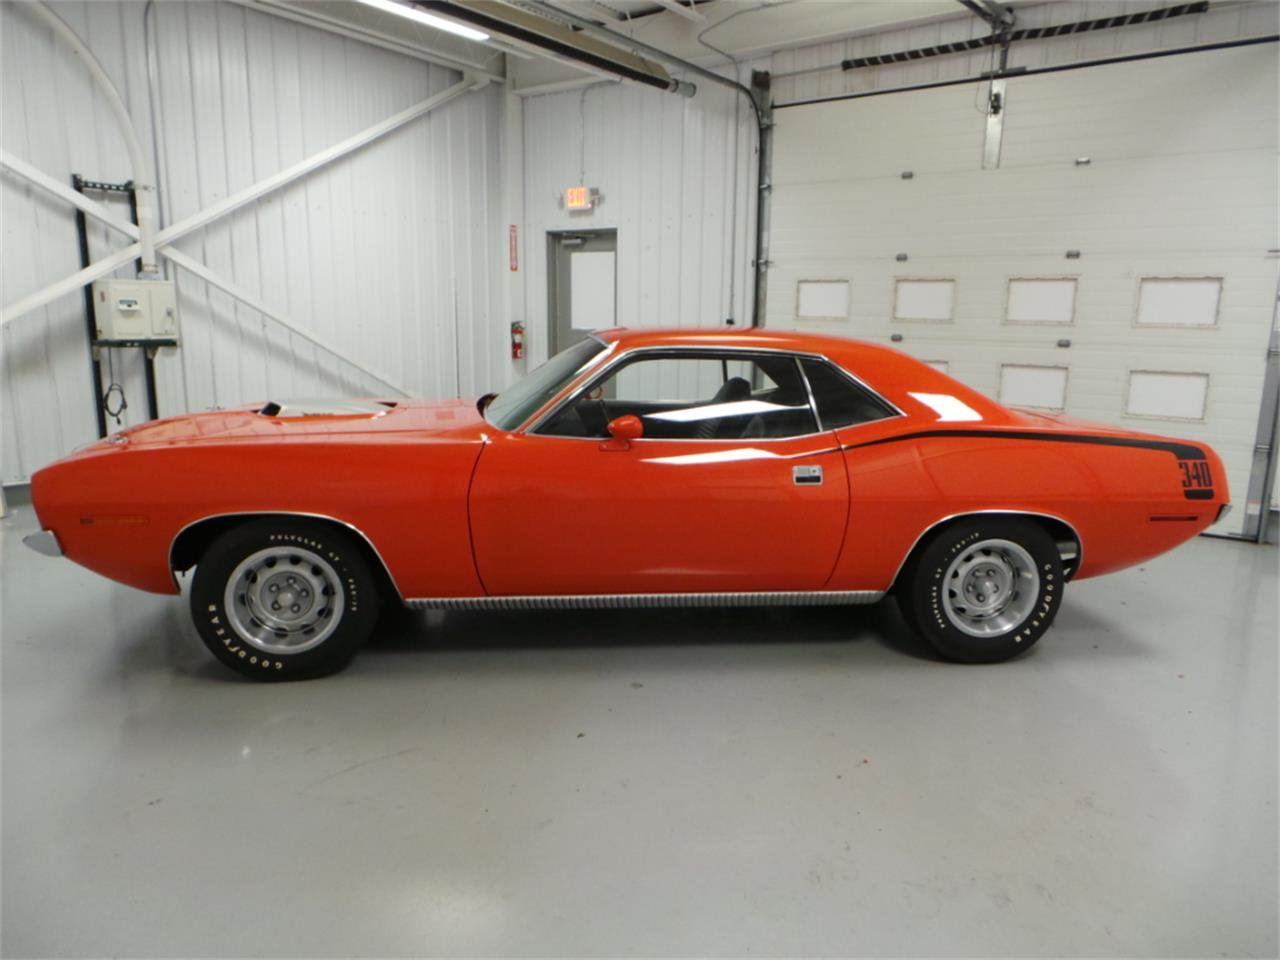 Large Picture of Classic '70 Plymouth Cuda - $69,912.00 Offered by Duncan Imports & Classic Cars - JL8U